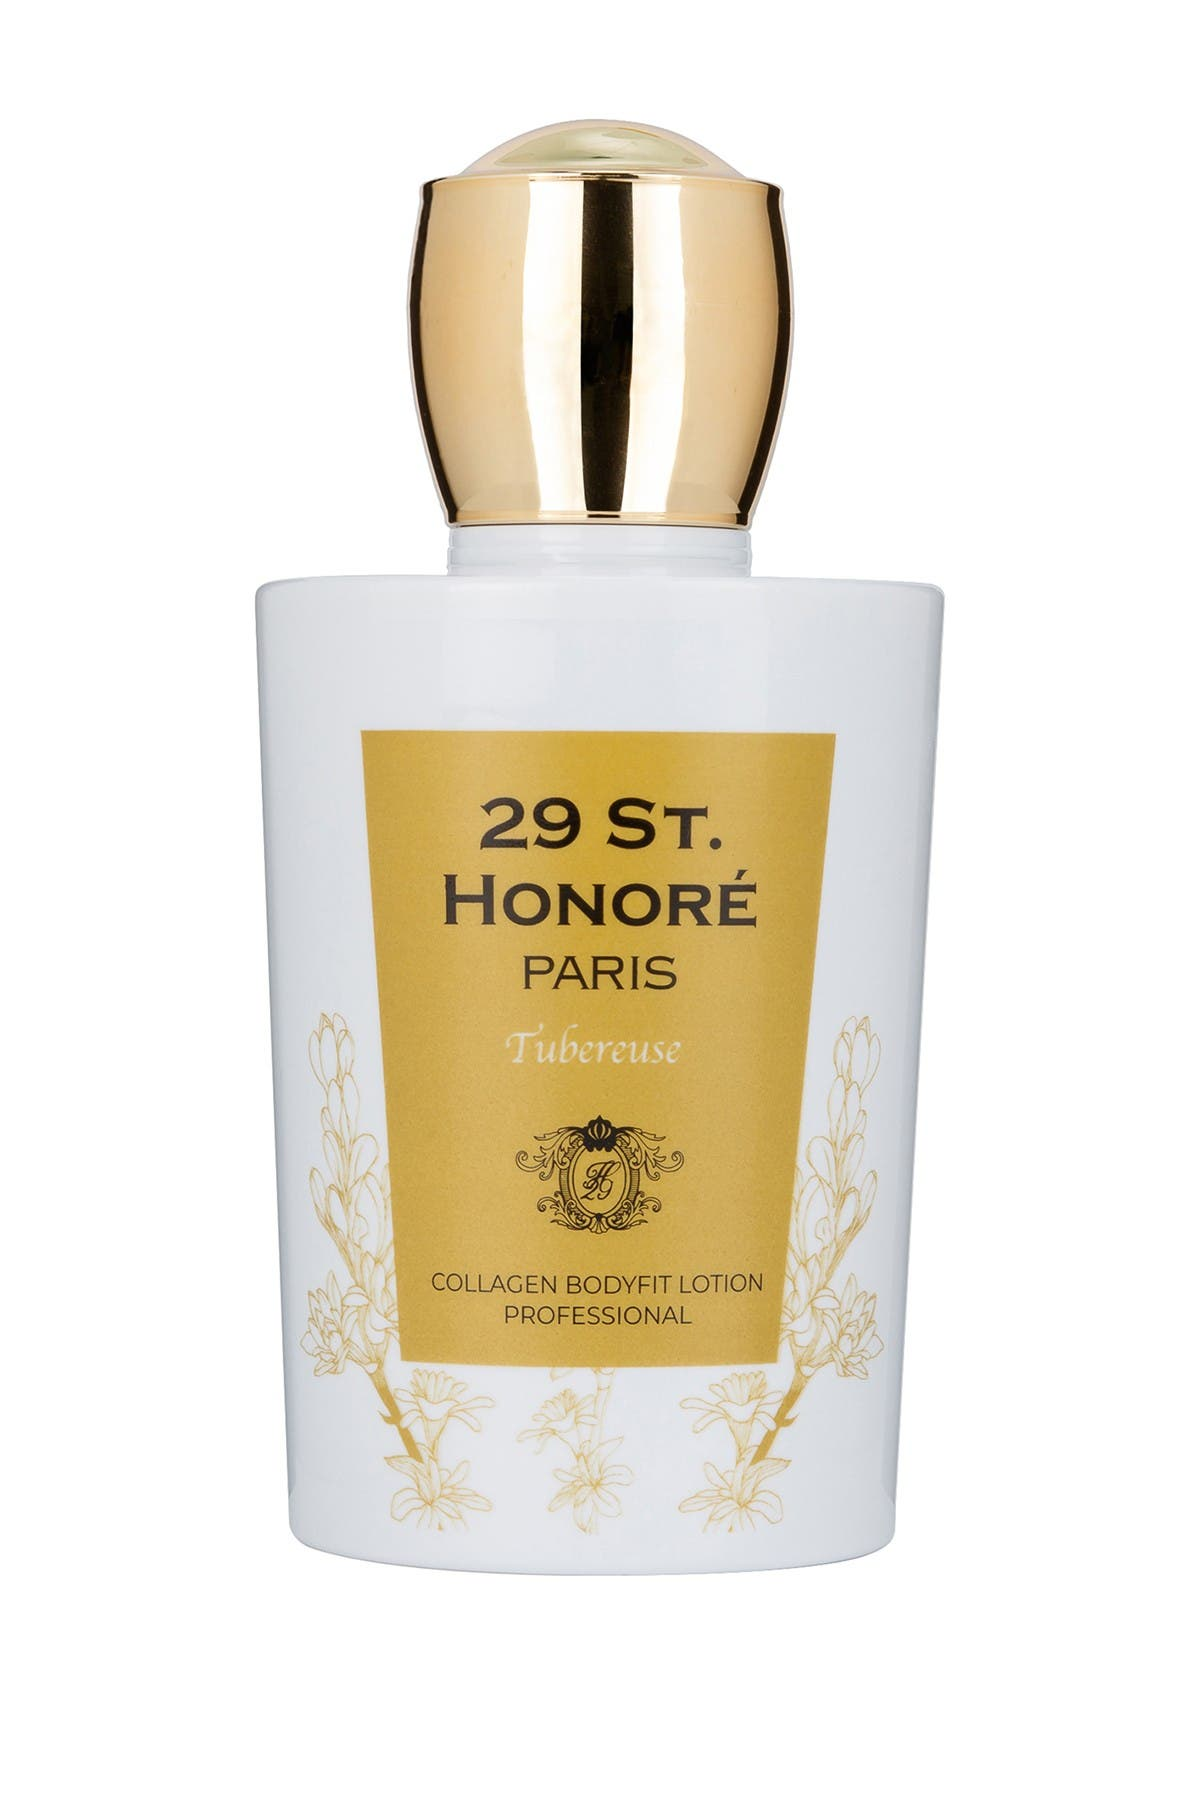 Image of 29 St. Honore Collagen Bodyfit Lotion Professional - Tubereuse